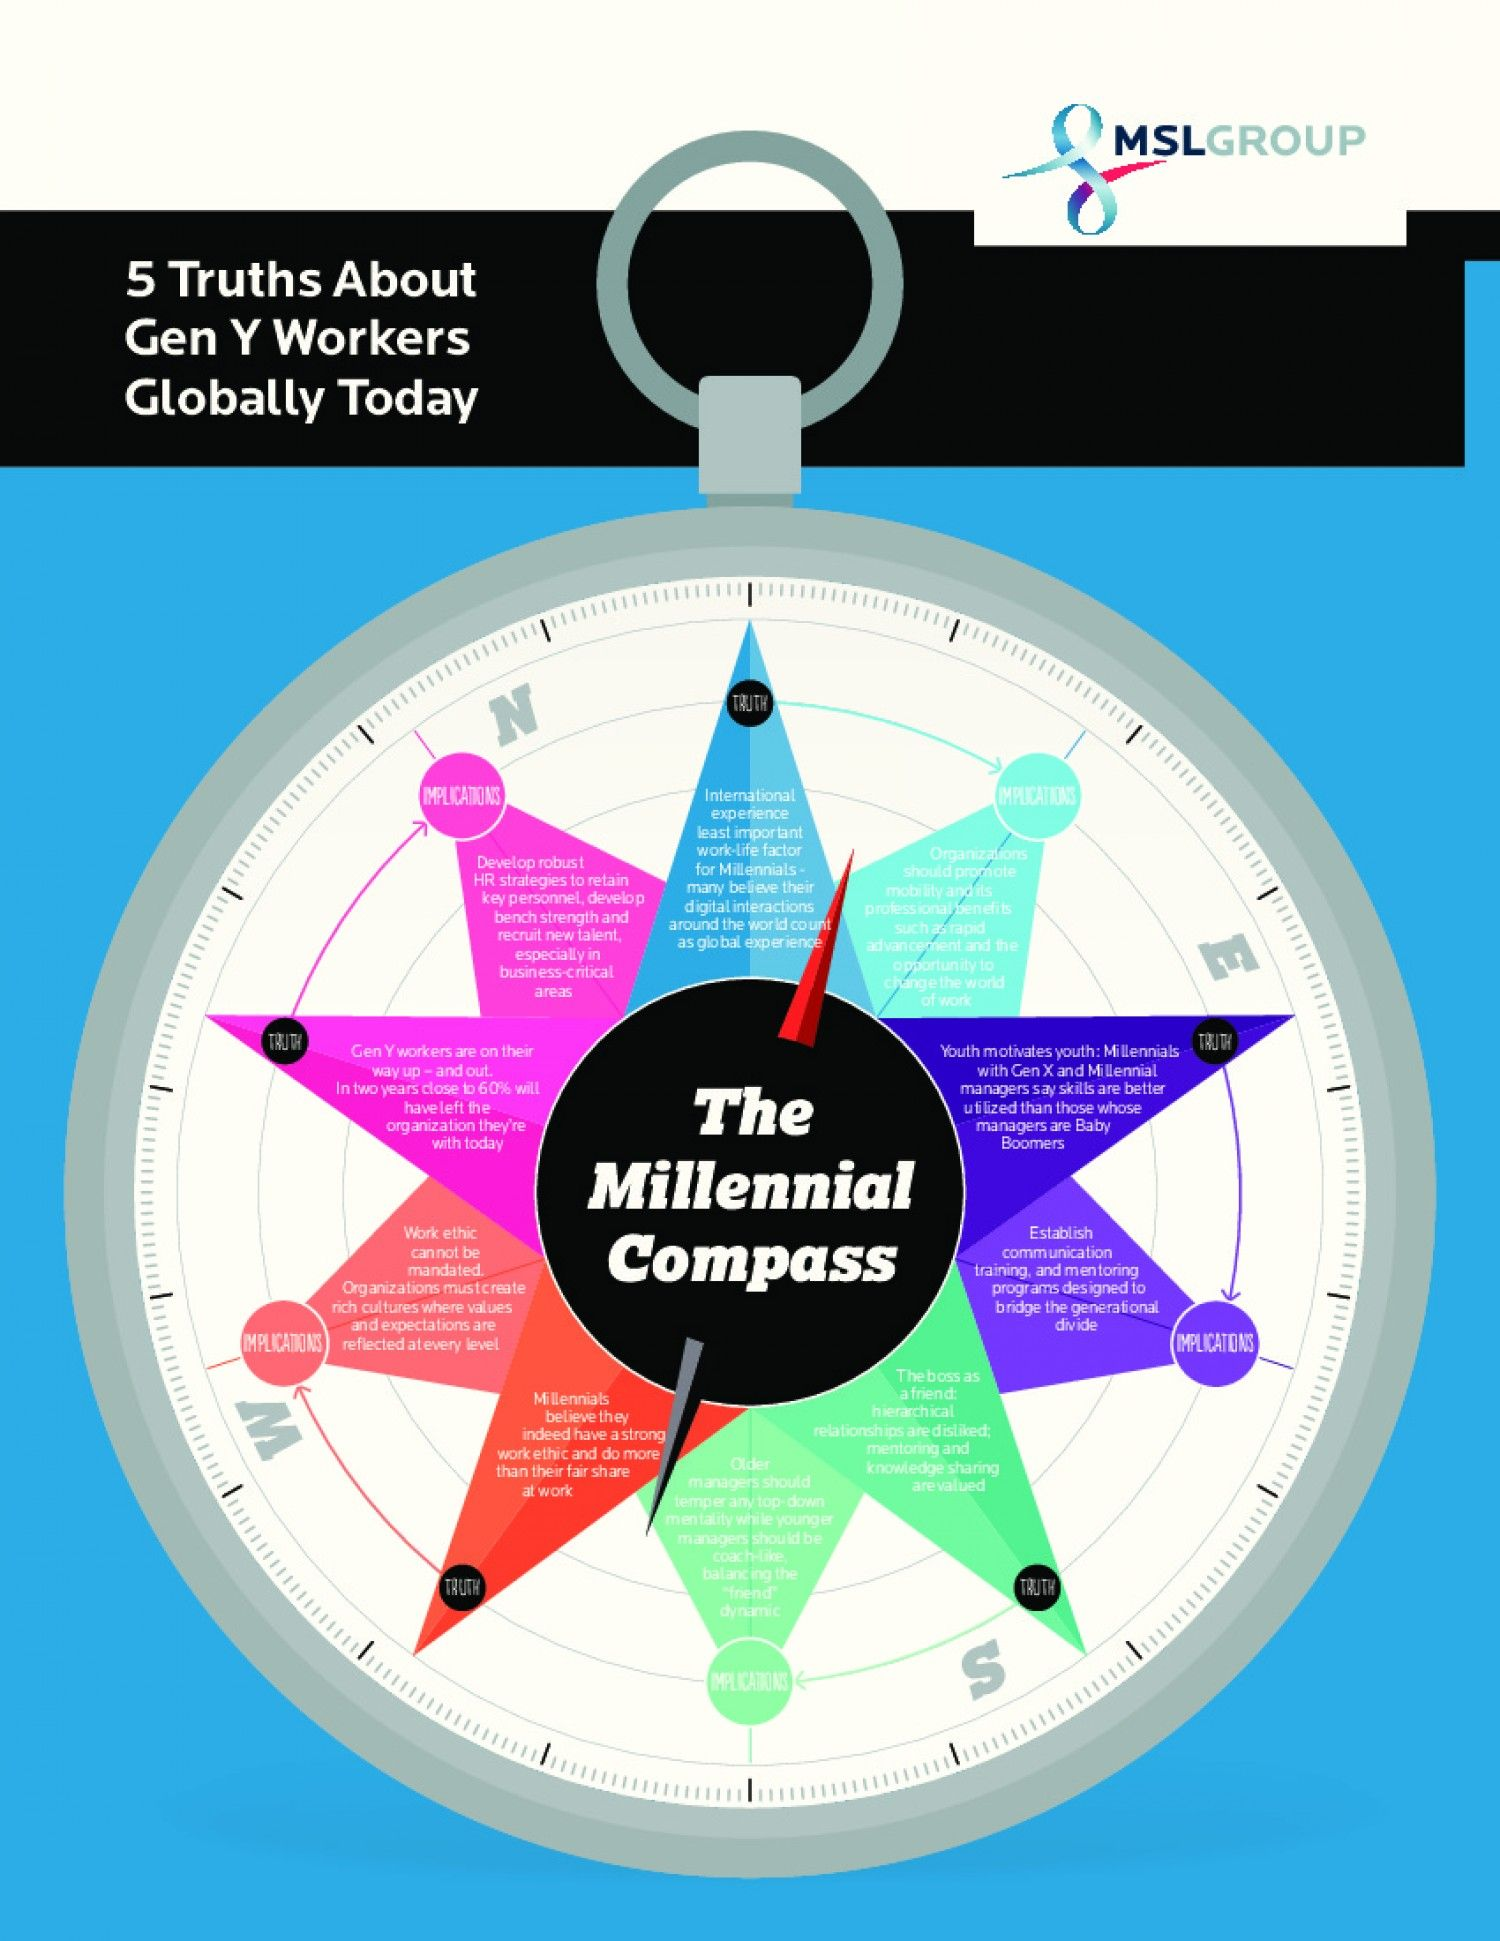 The Millennial Compass 5 Truths Implications On Business